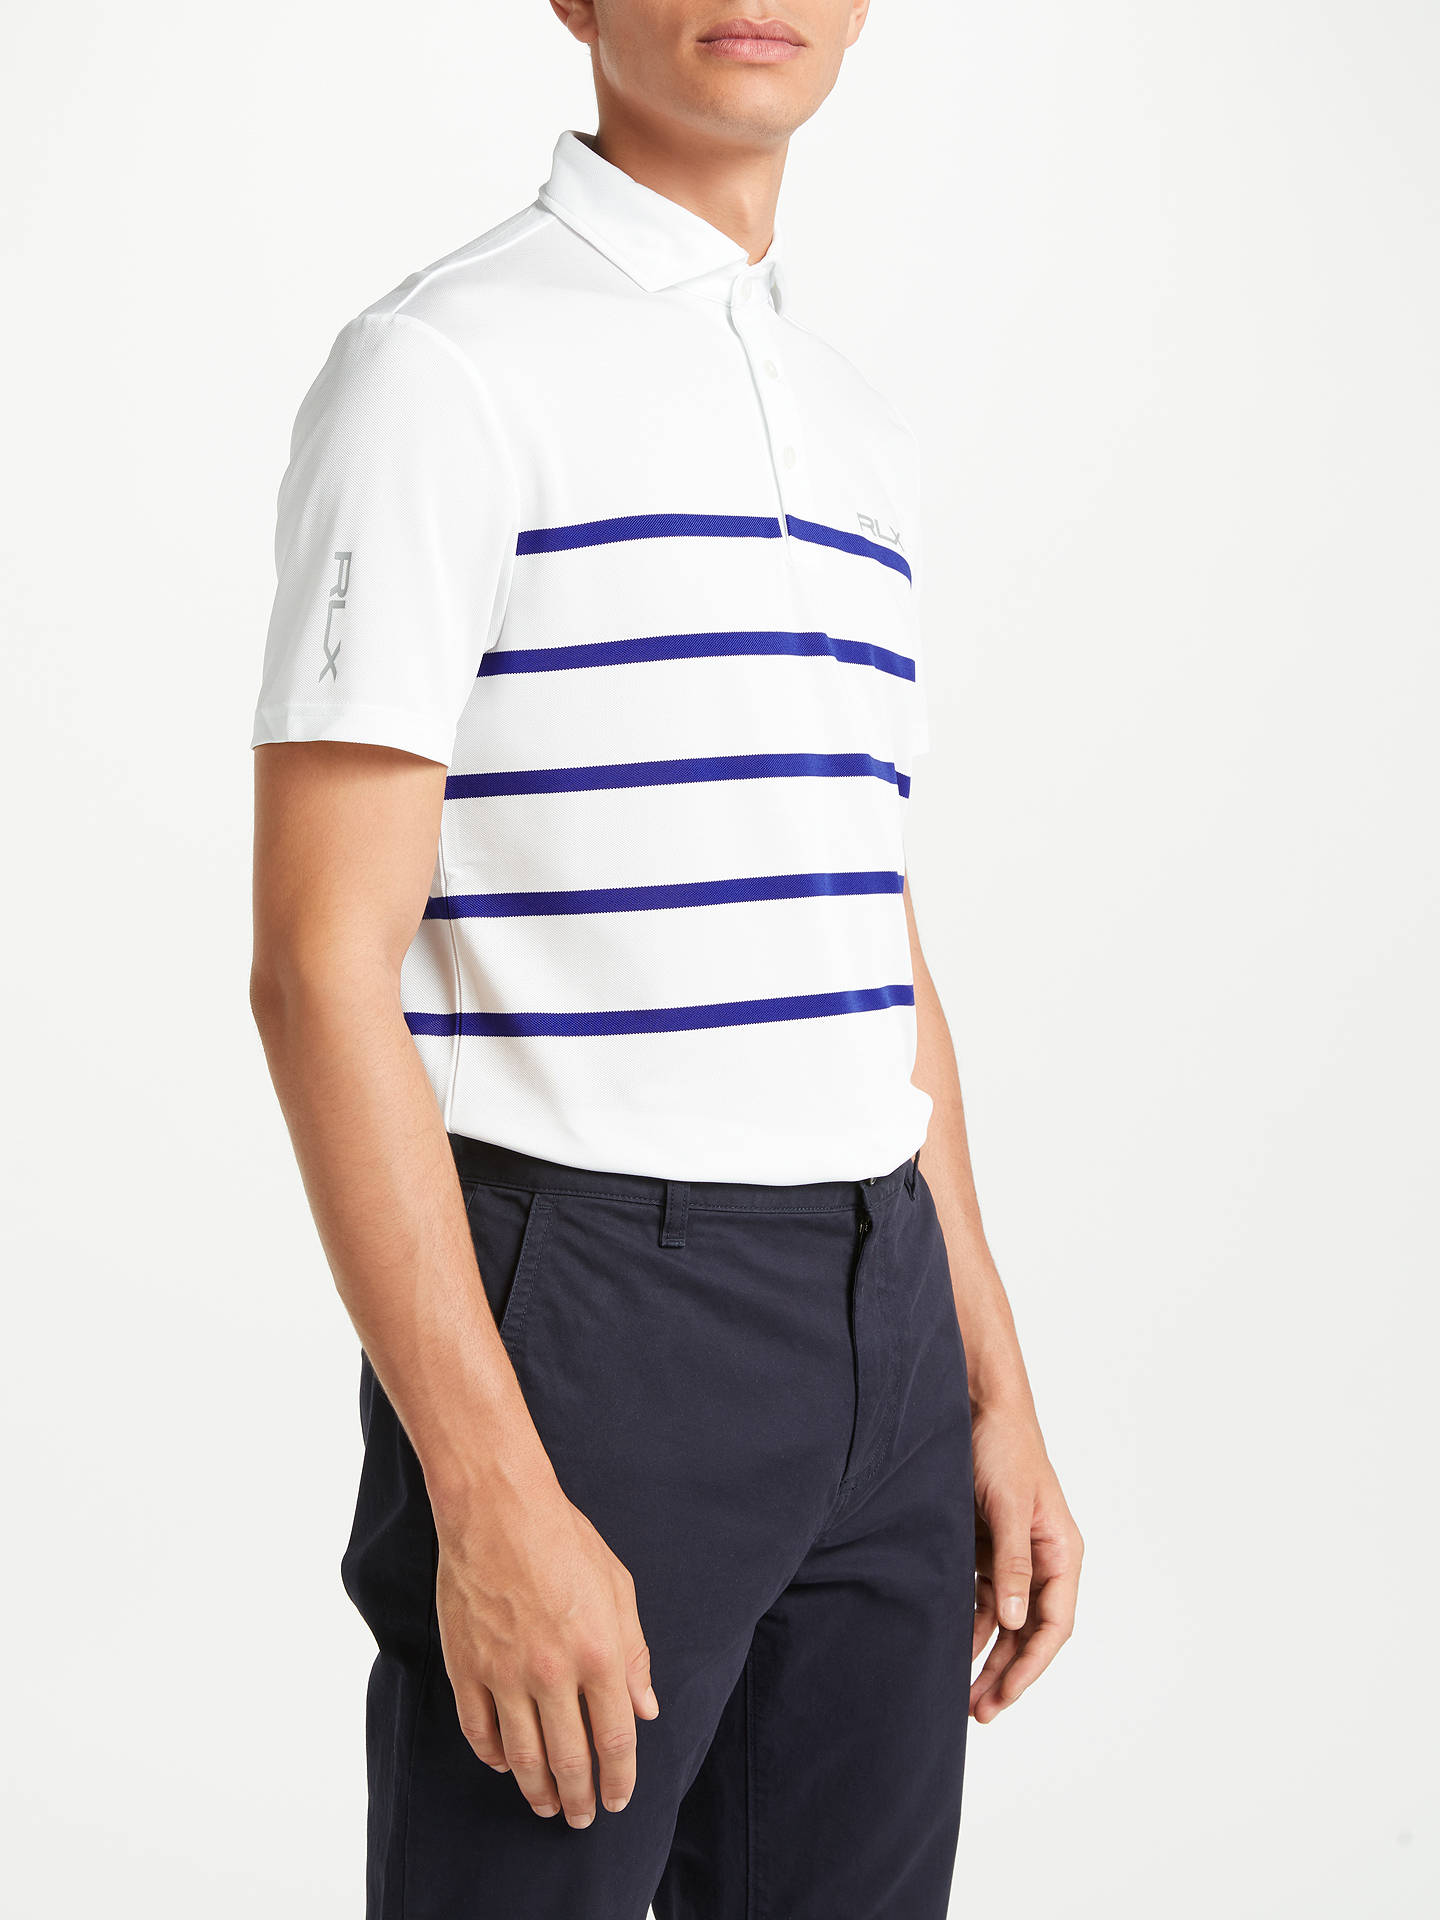 47b99516d Buy Polo Golf By Ralph Lauren Pro Fit Polo Shirt, Pure White/City Royal ...